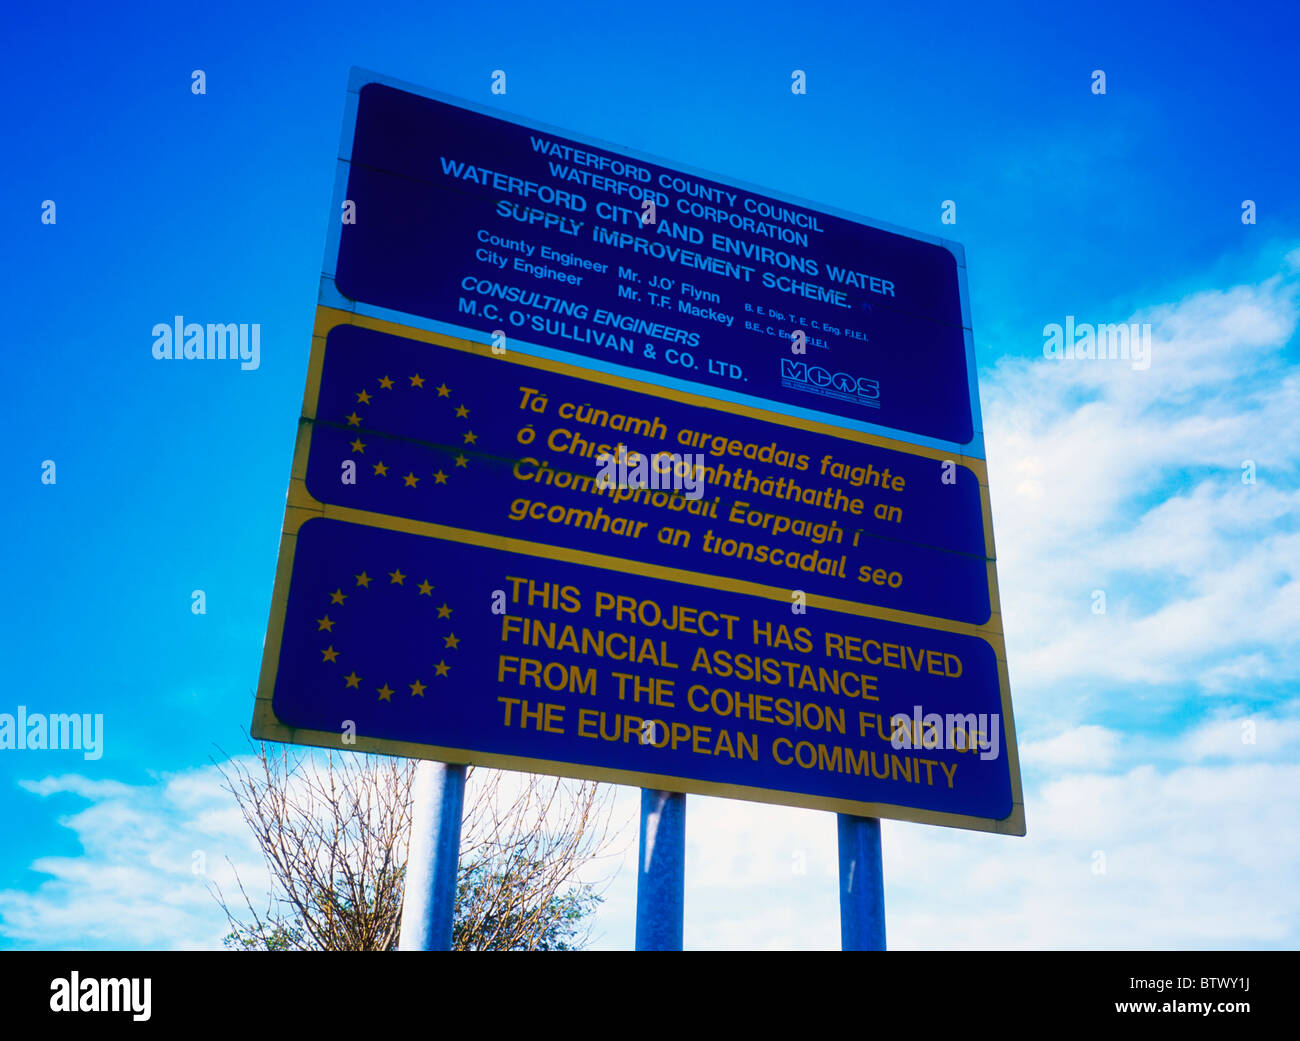 Road Sign Indicating Ec Support, Near Waterford City, Co Waterford, Ireland - Stock Image